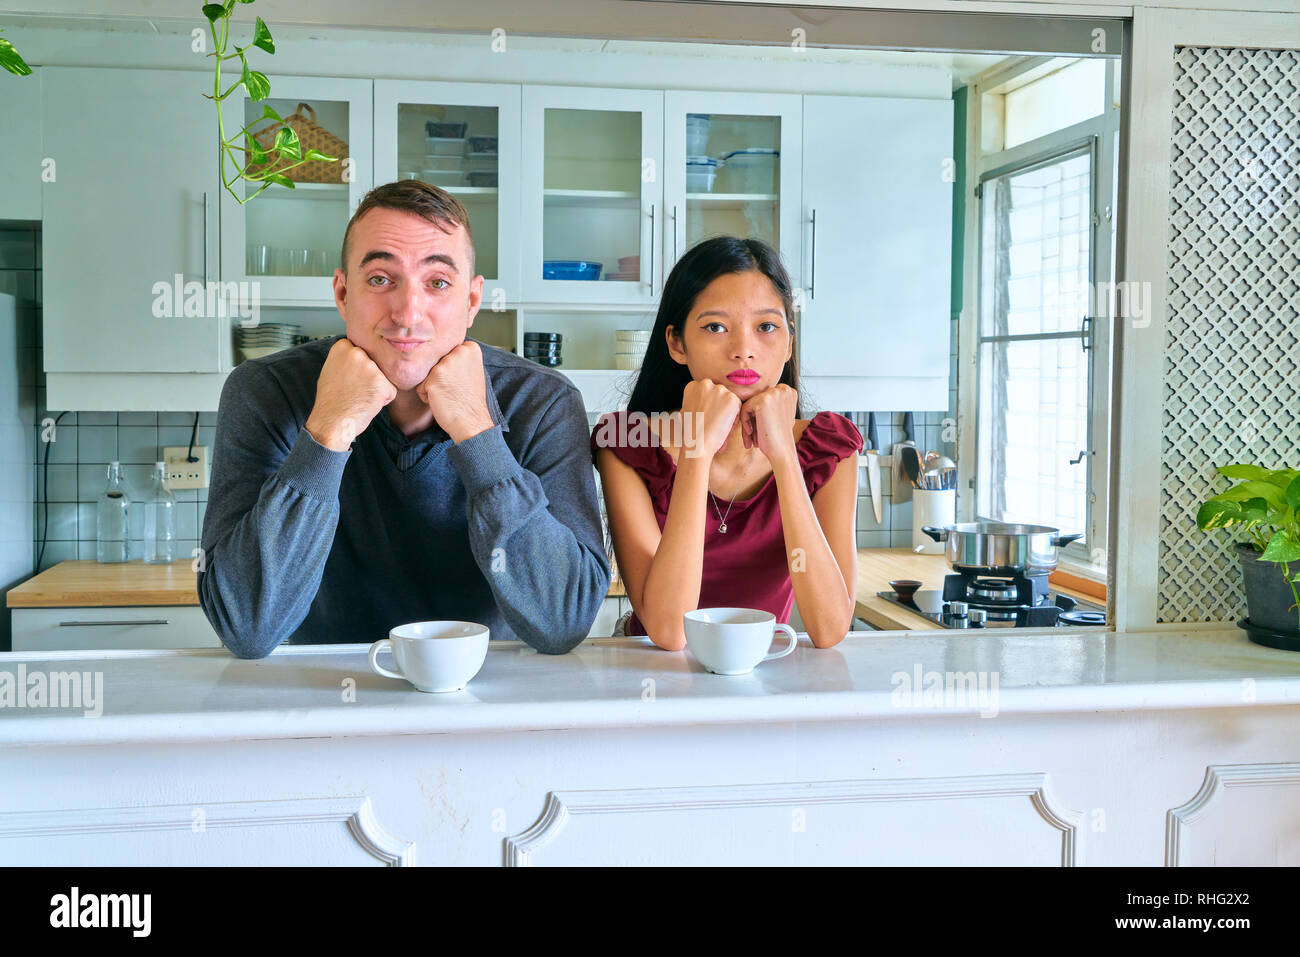 Lovely couple posing - hand on chin and looking at camera - Stock Image